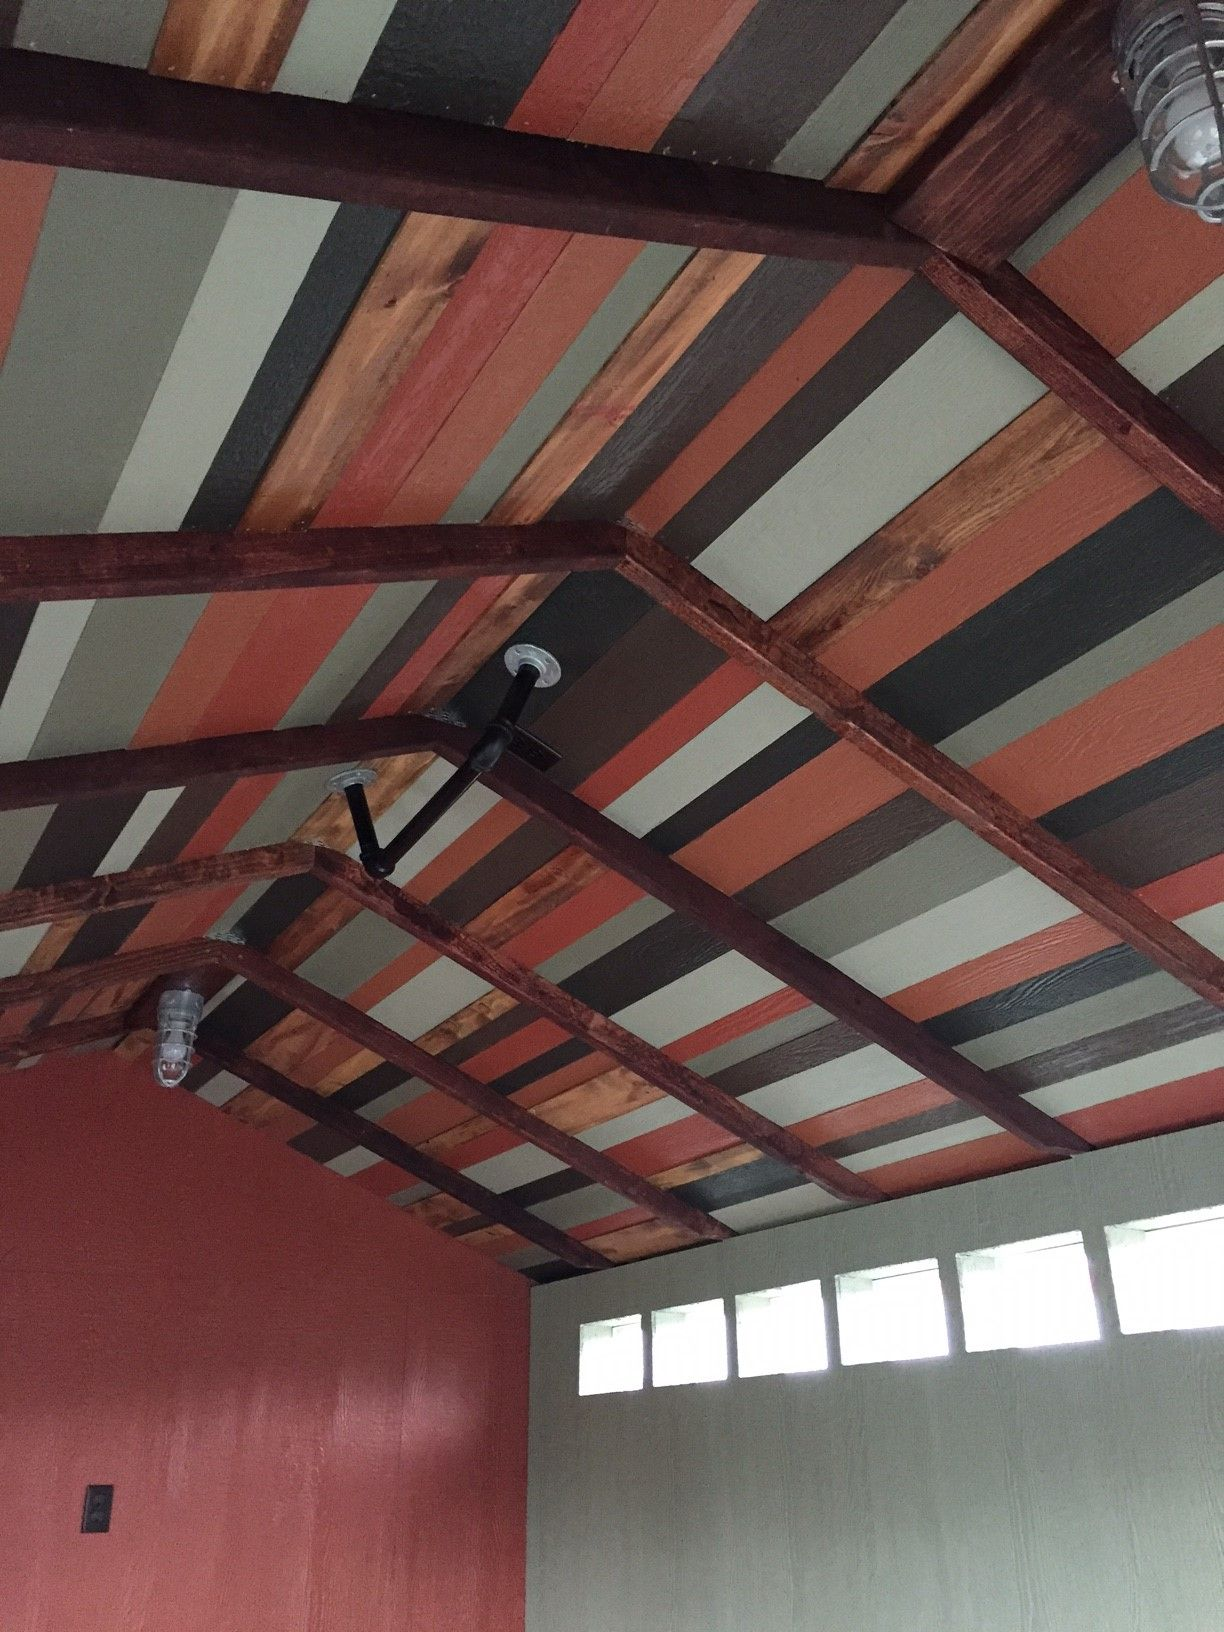 Multi Colored Reclaimed Wood Ceiling Fits Perfectly